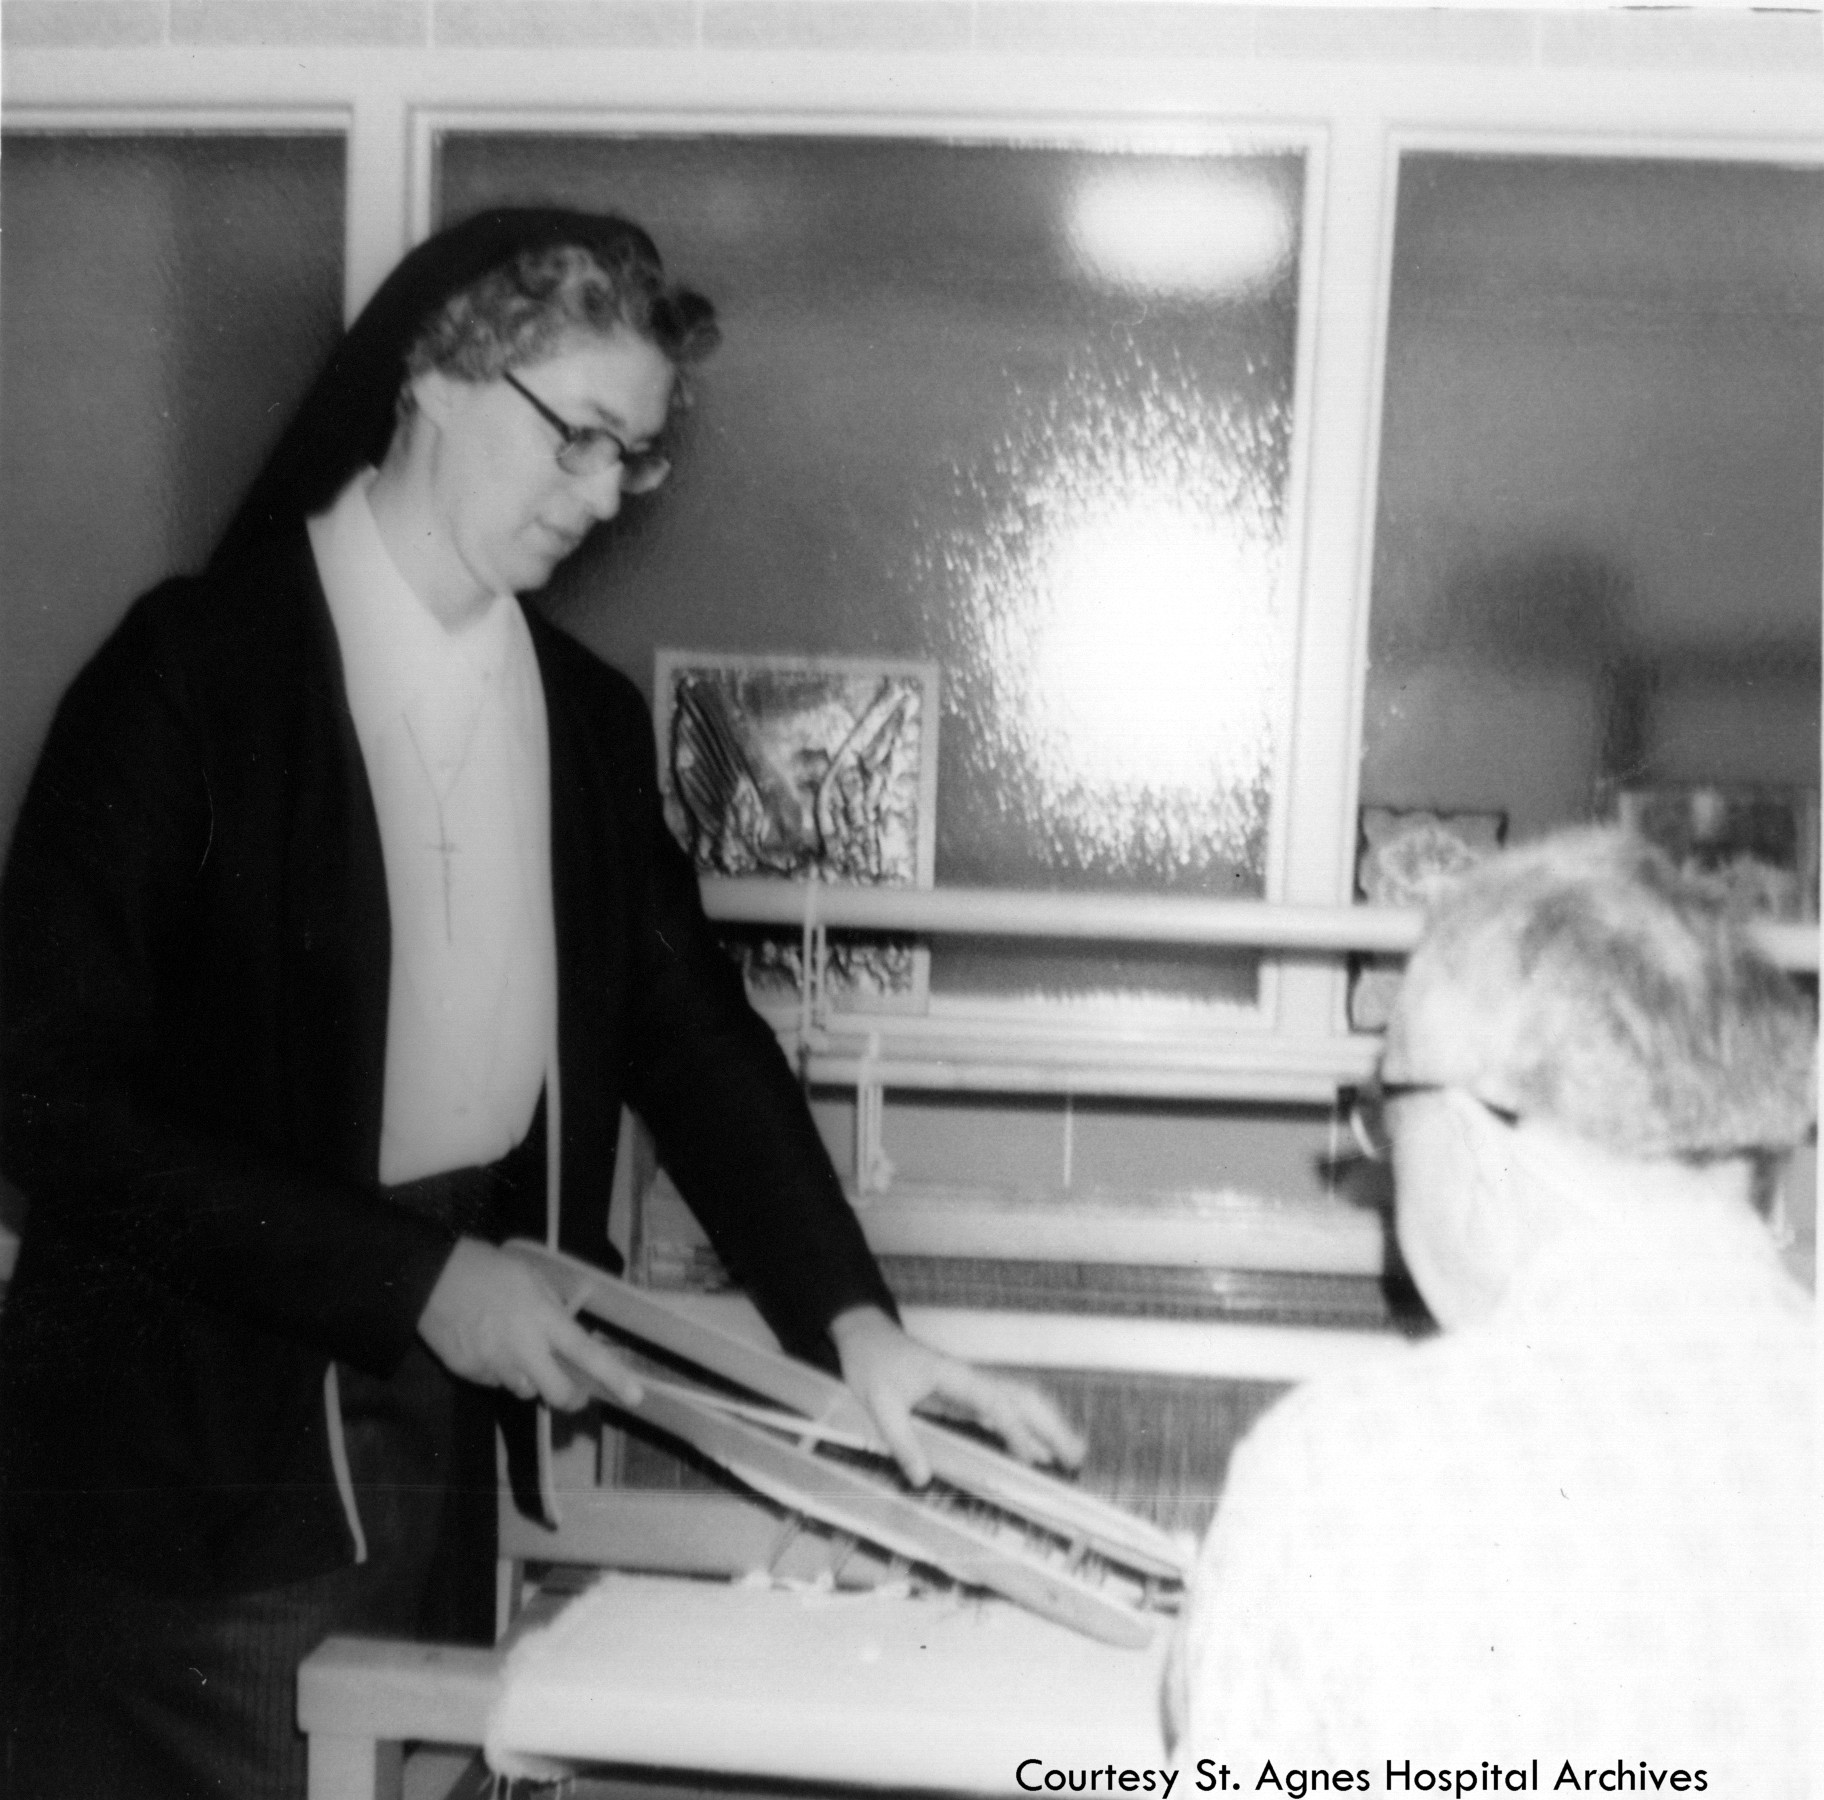 Sister Mary Christopher Esler with an occupational therapy patient at St. Agnes Hospital, 1970s.